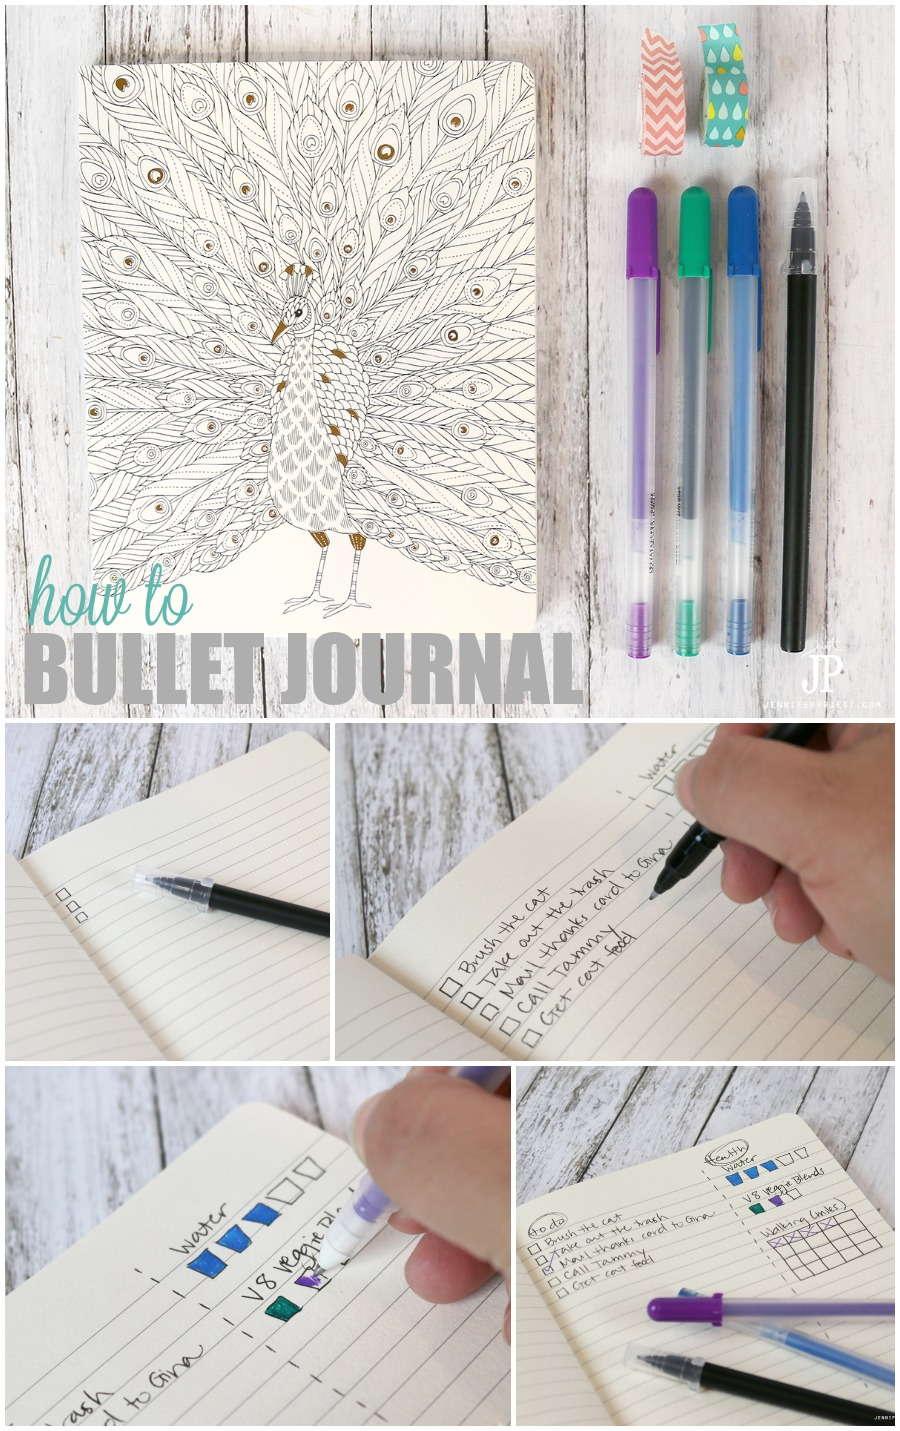 How to bullet journal collage